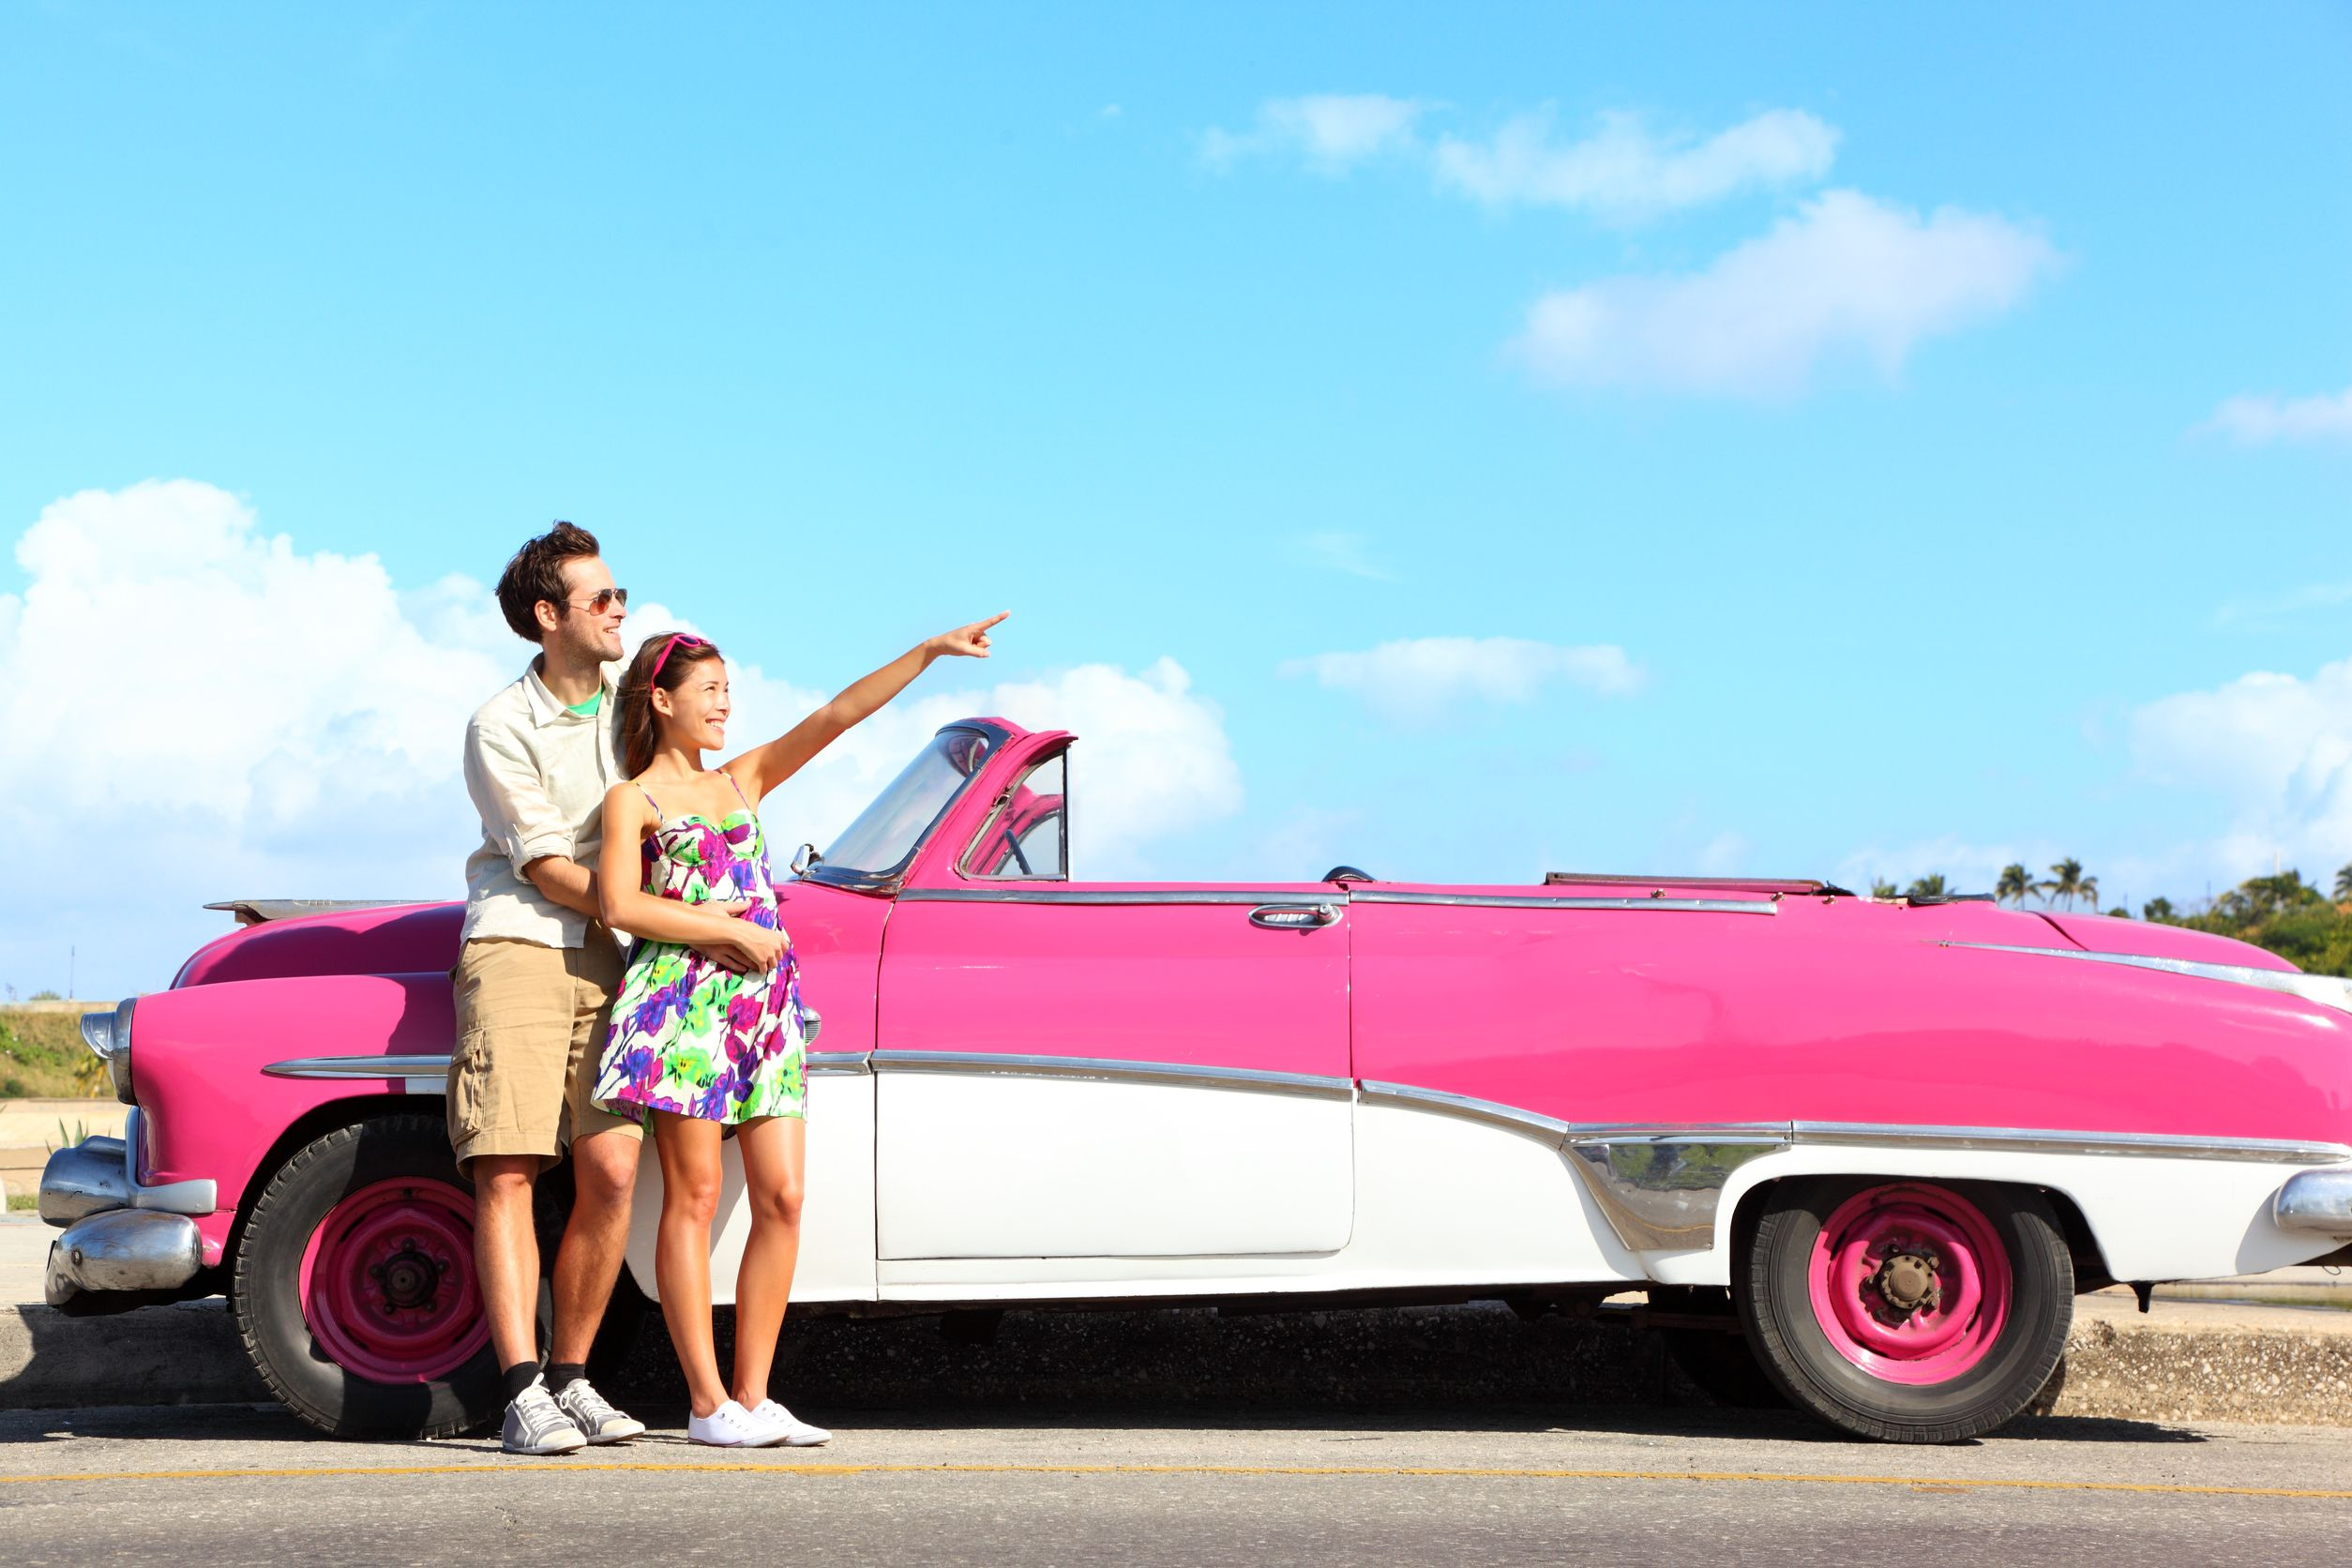 vintage-car-couple-pointing-looking-standing-by-pink-retro-vintage-car-smiling-happy-young-couple-on-summer-road-trip-car-holiday-in-Havana-Cuba